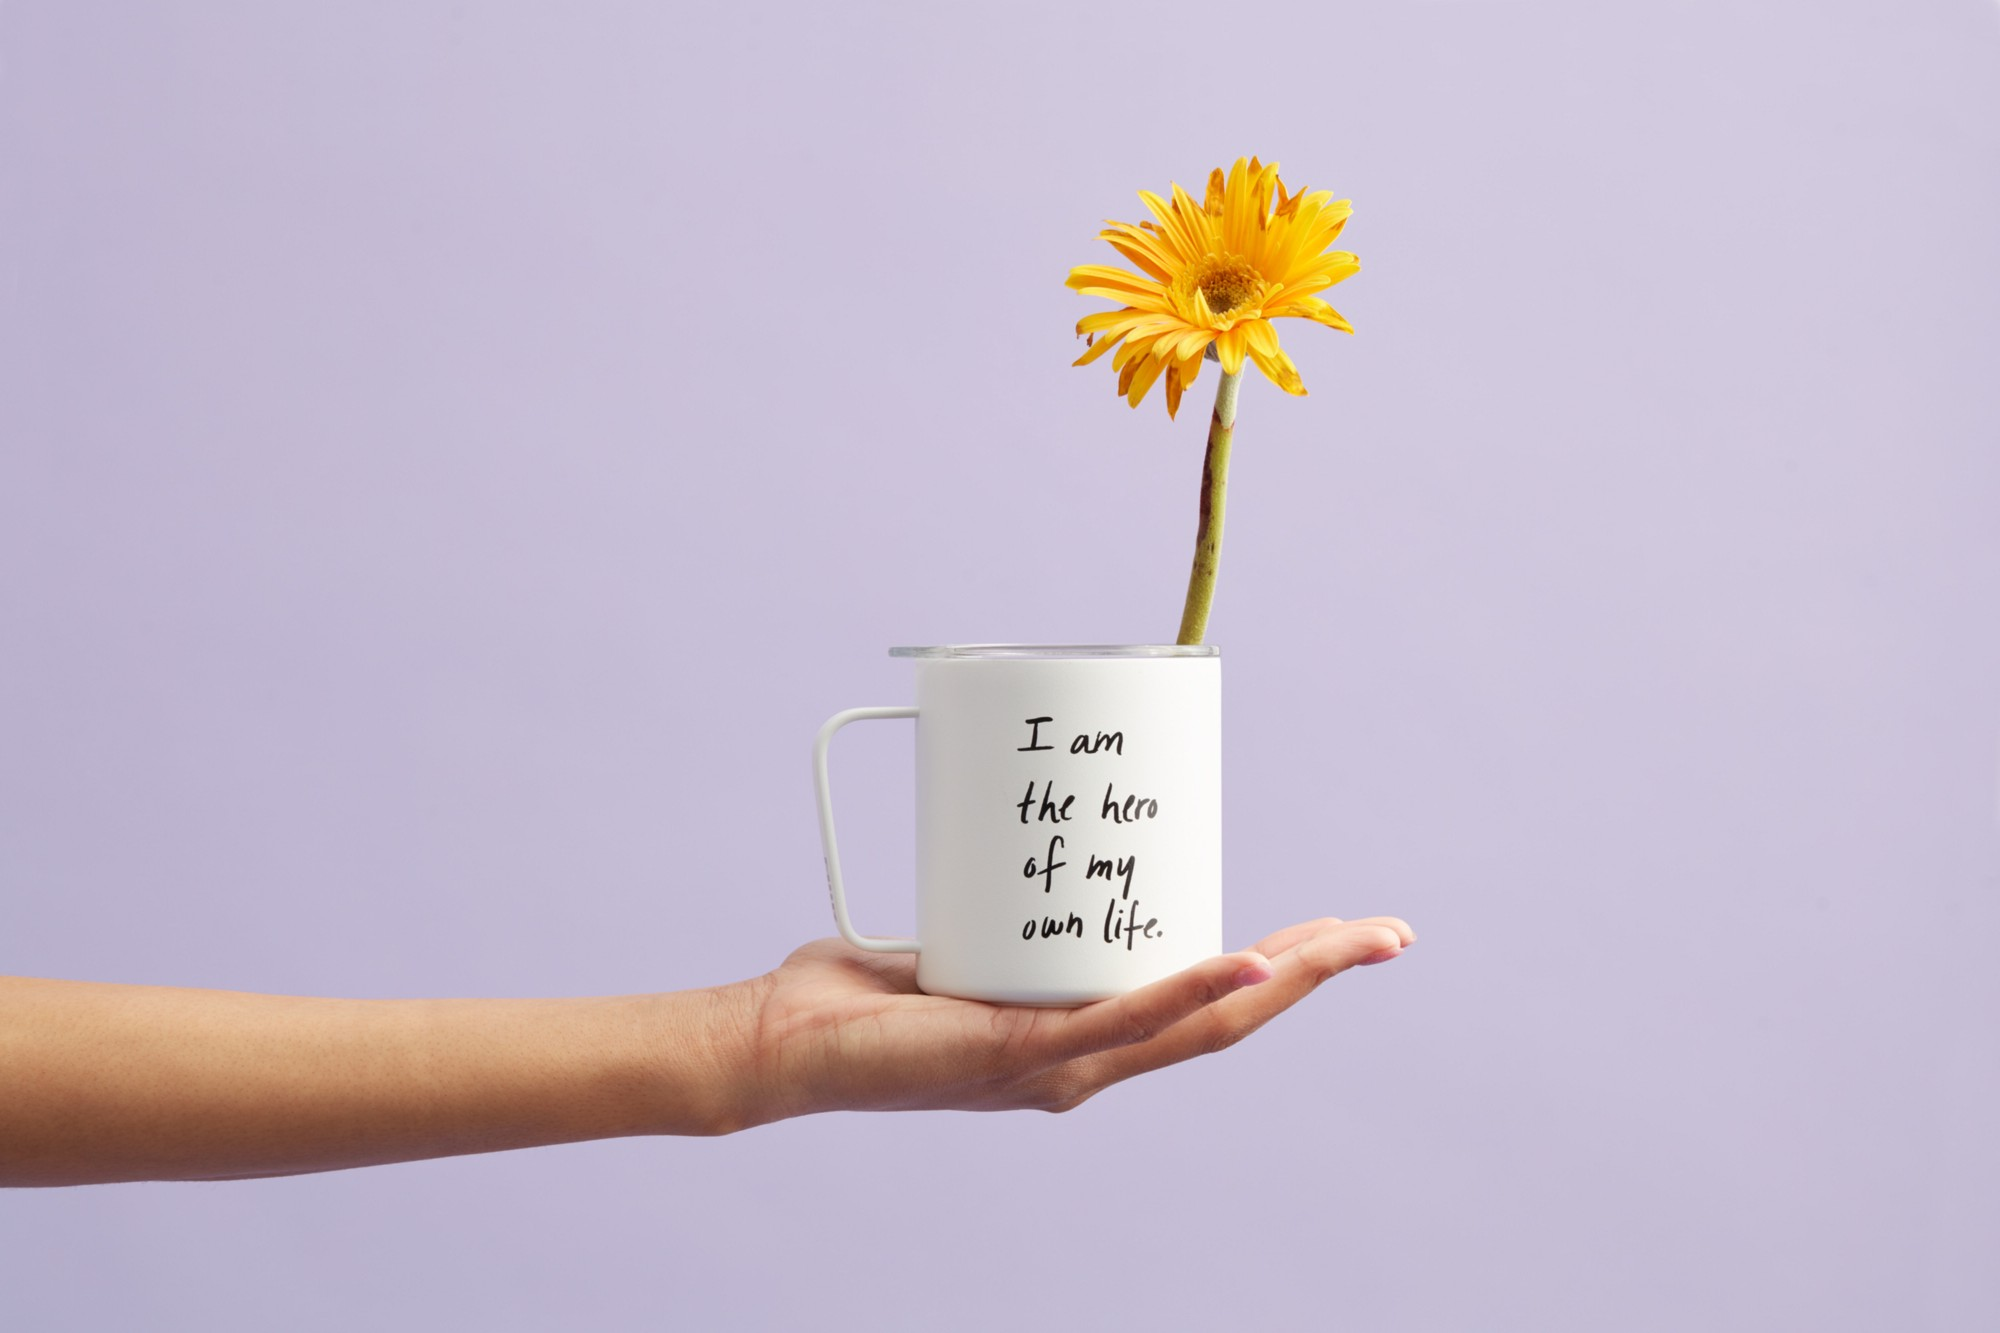 Flower in a mug with the words 'I am the hero of my own life'